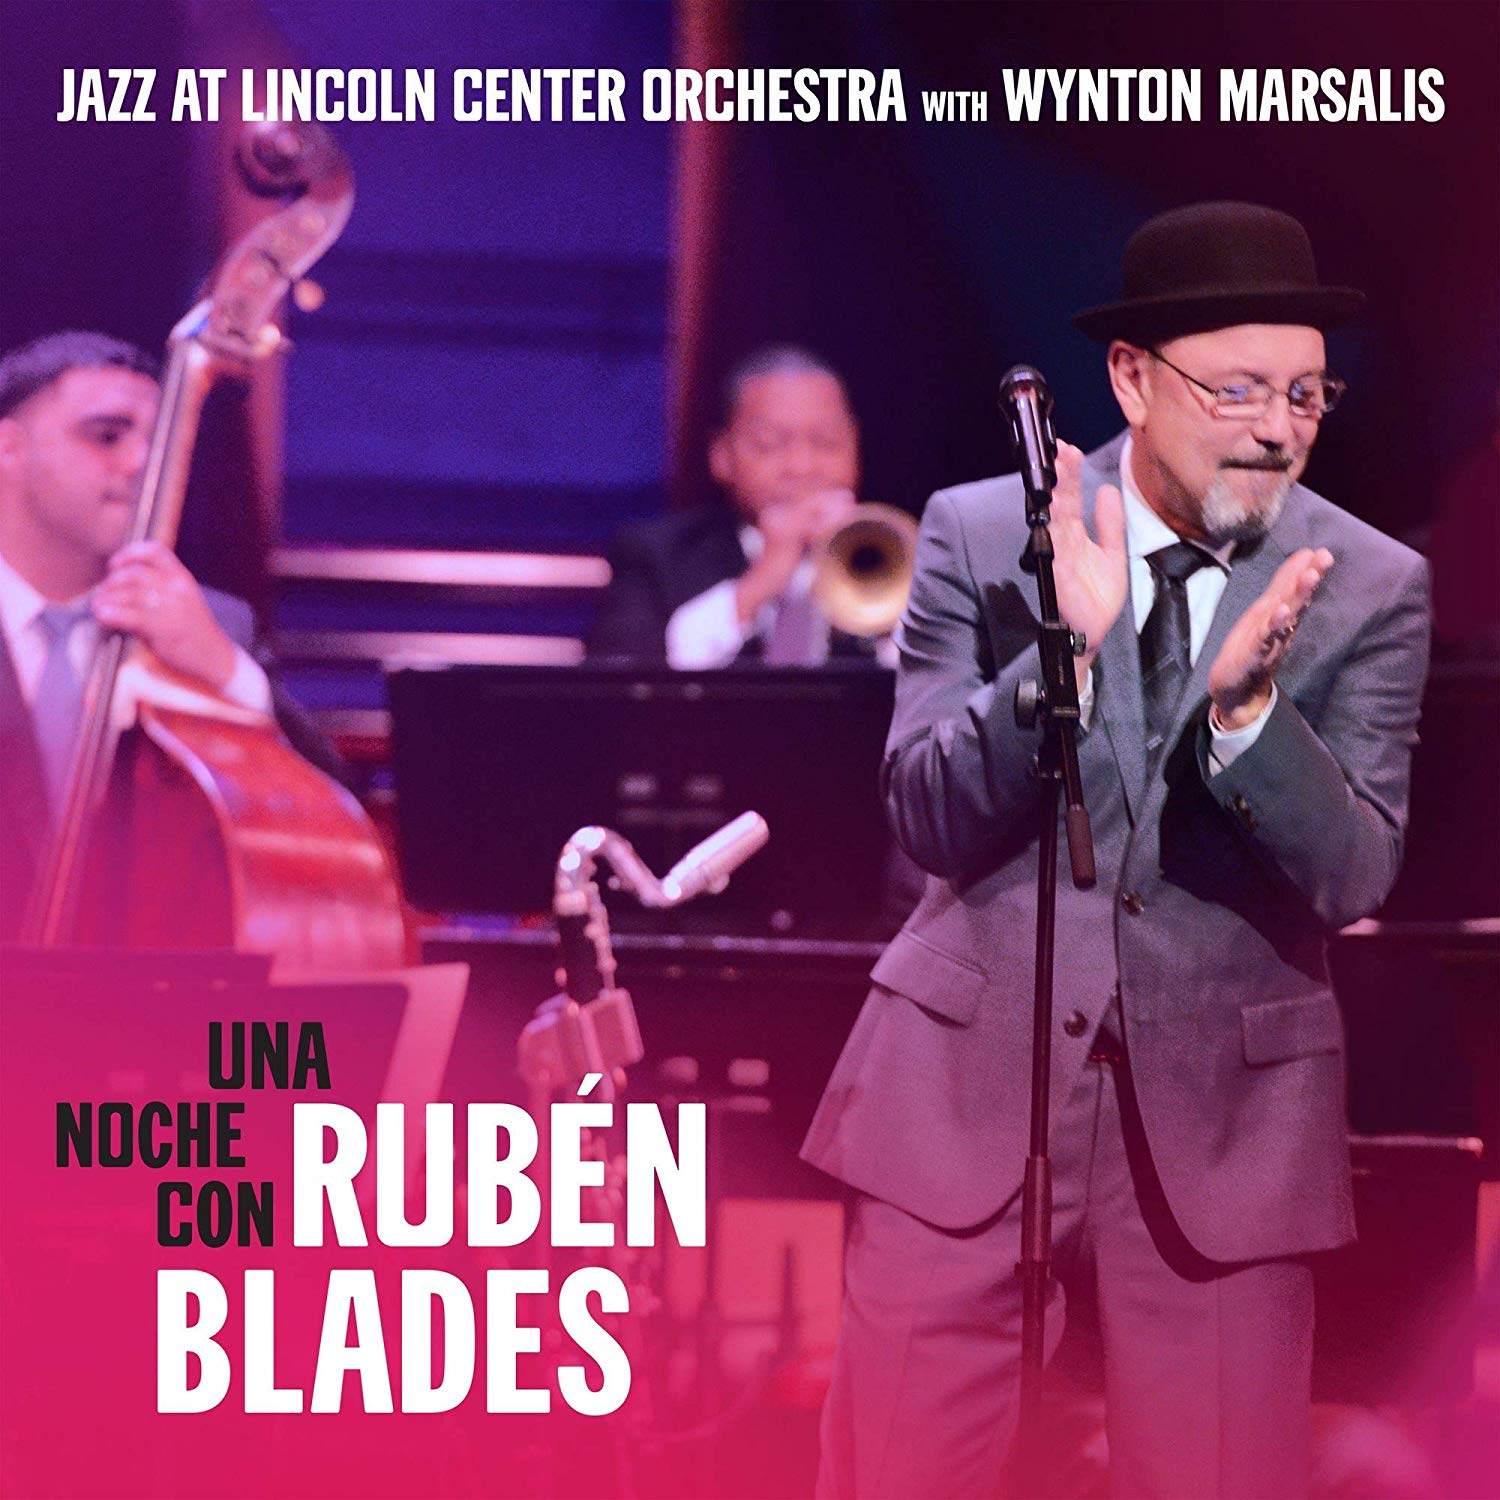 The Jazz At Lincoln Center Orchestra With Wynton Marsalis - Una Noche Con Ruben Blades